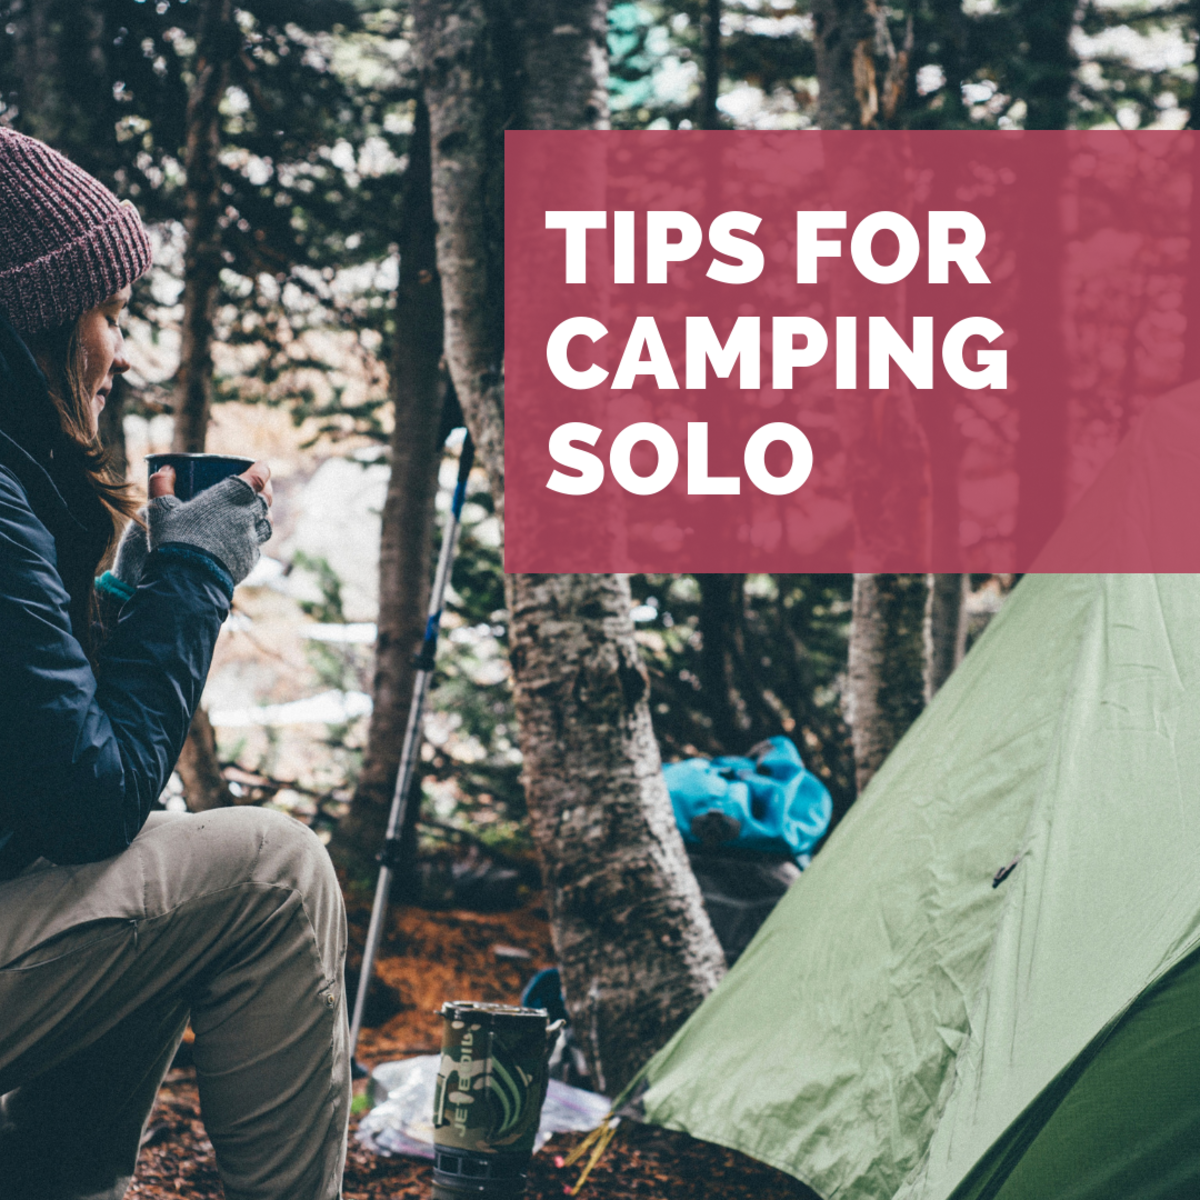 Safety Tips for Women Camping Alone for the First Time